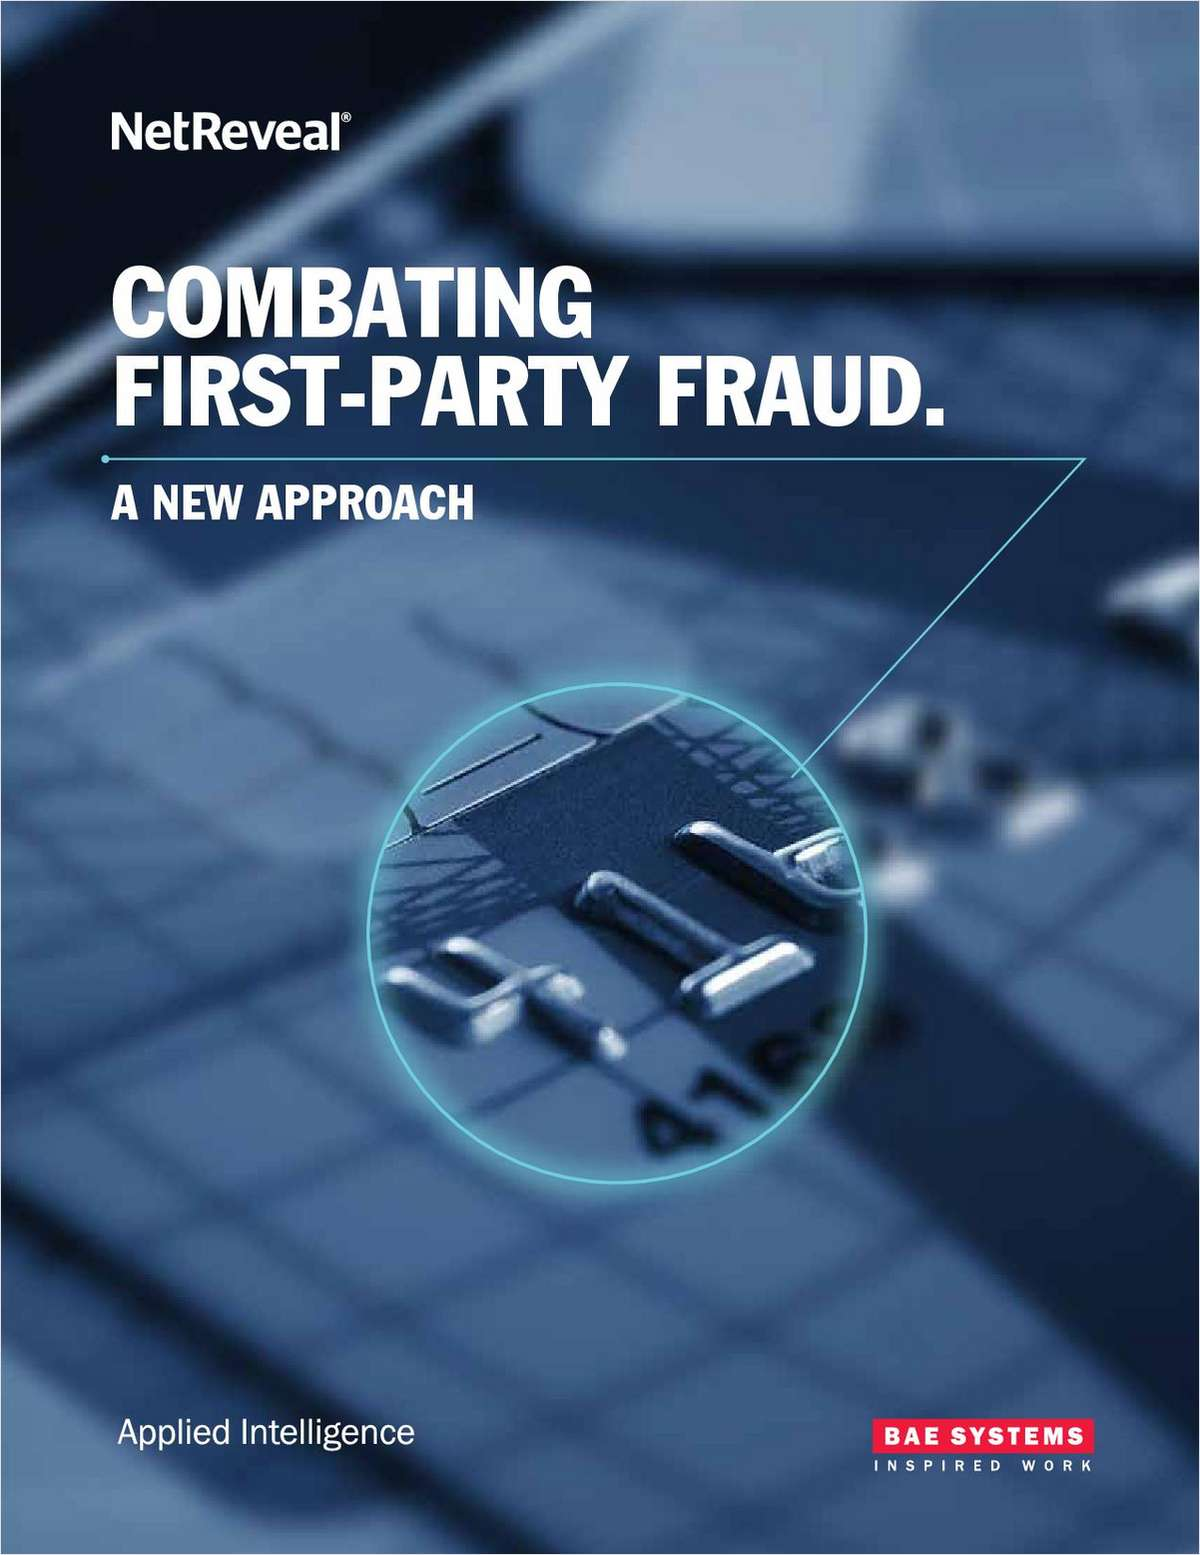 Combating First-Party Fraud - A New Approach